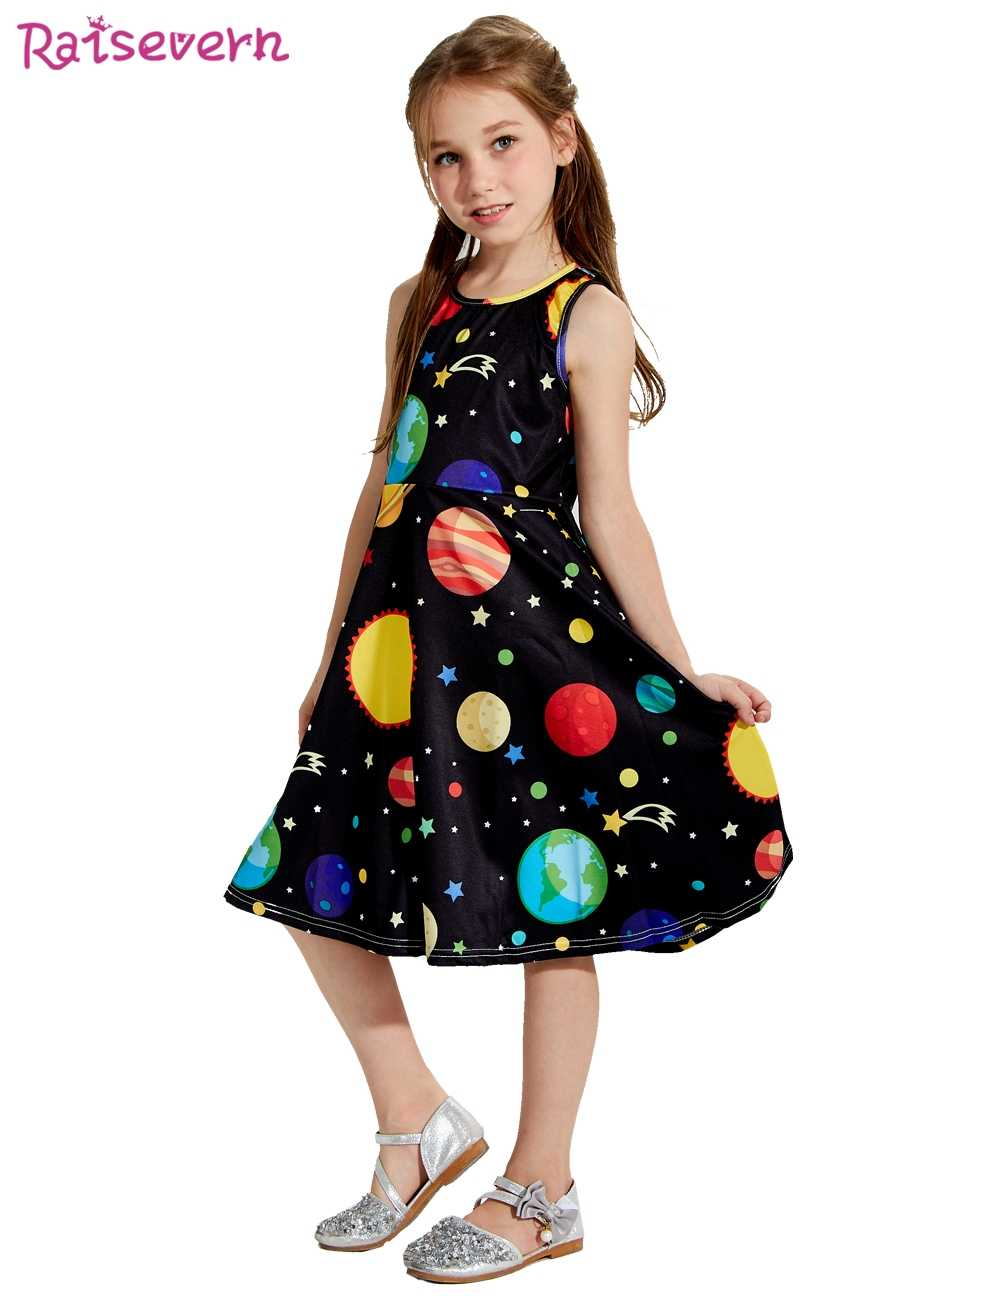 a373aebf53c7e Summer Baby Girl Dress Fashion Kids Dresses Girls Cartoon Sun Moon Earth  Stars Outer Space Starry